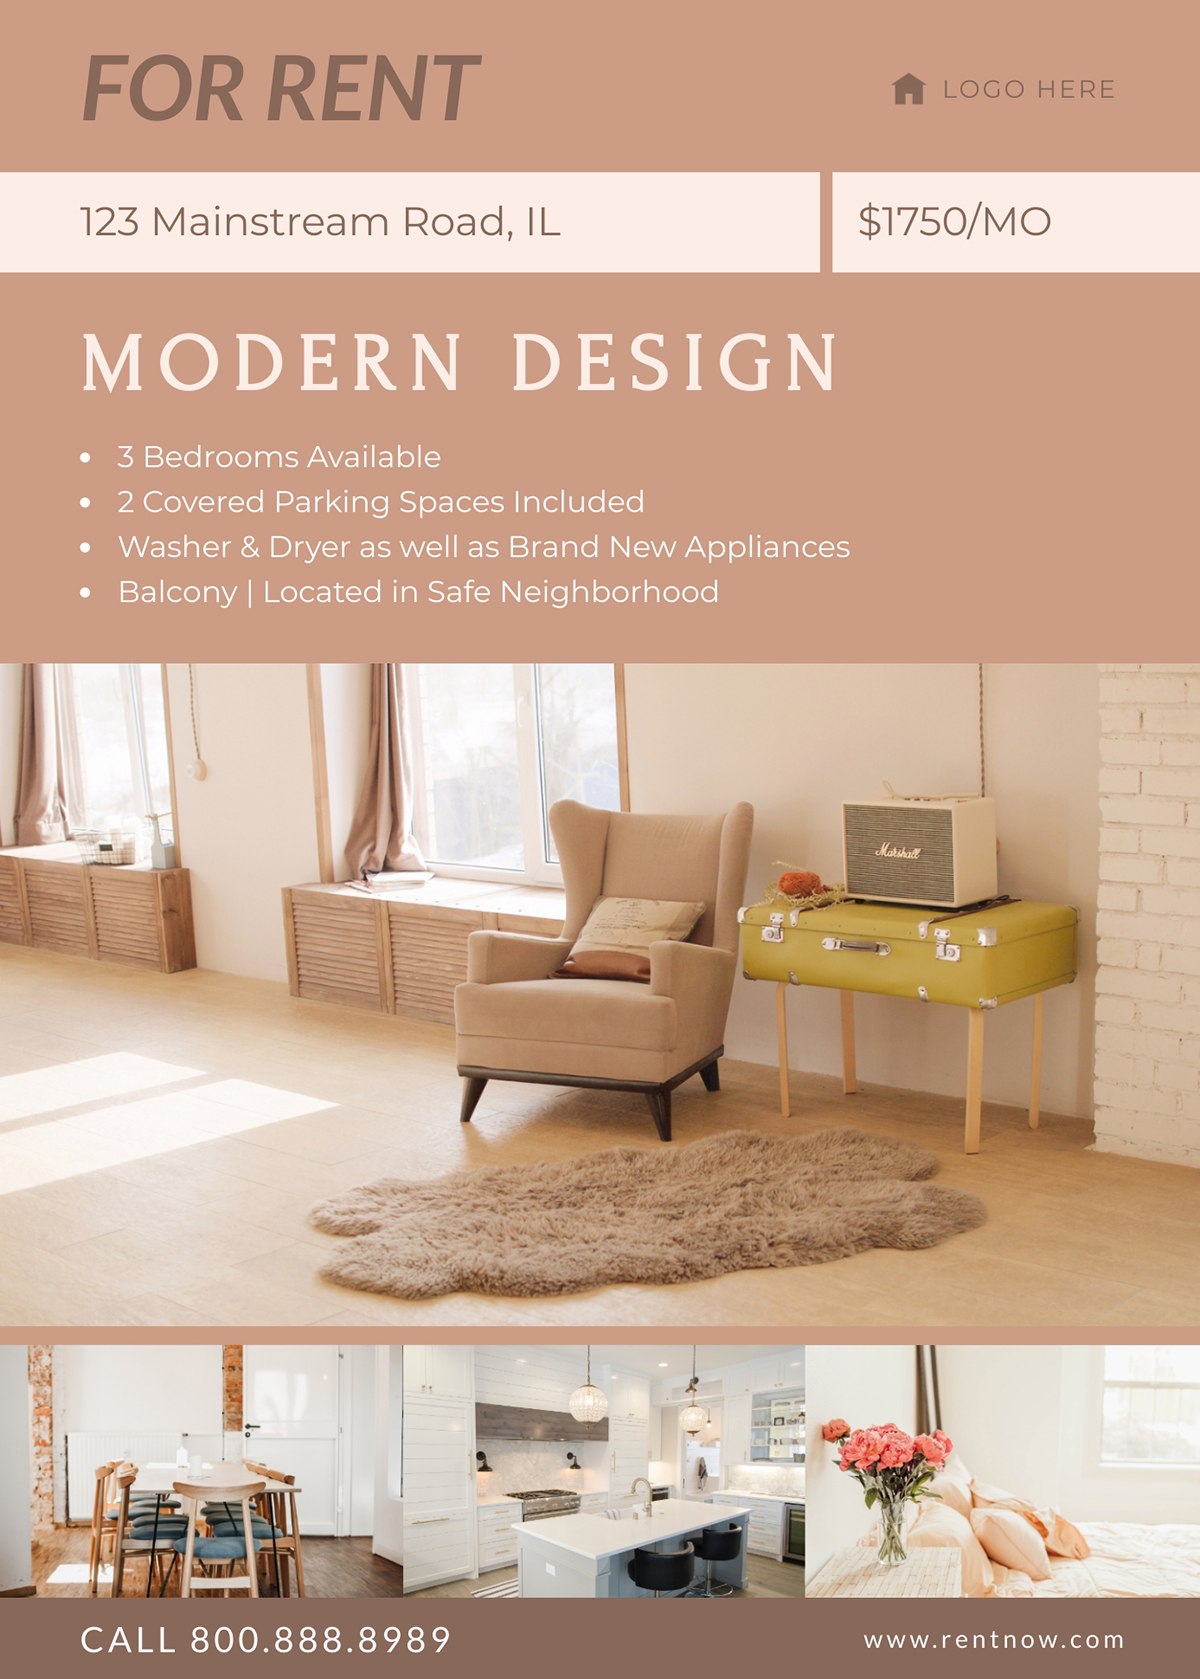 An apartment for rent flyer template available in Visme.